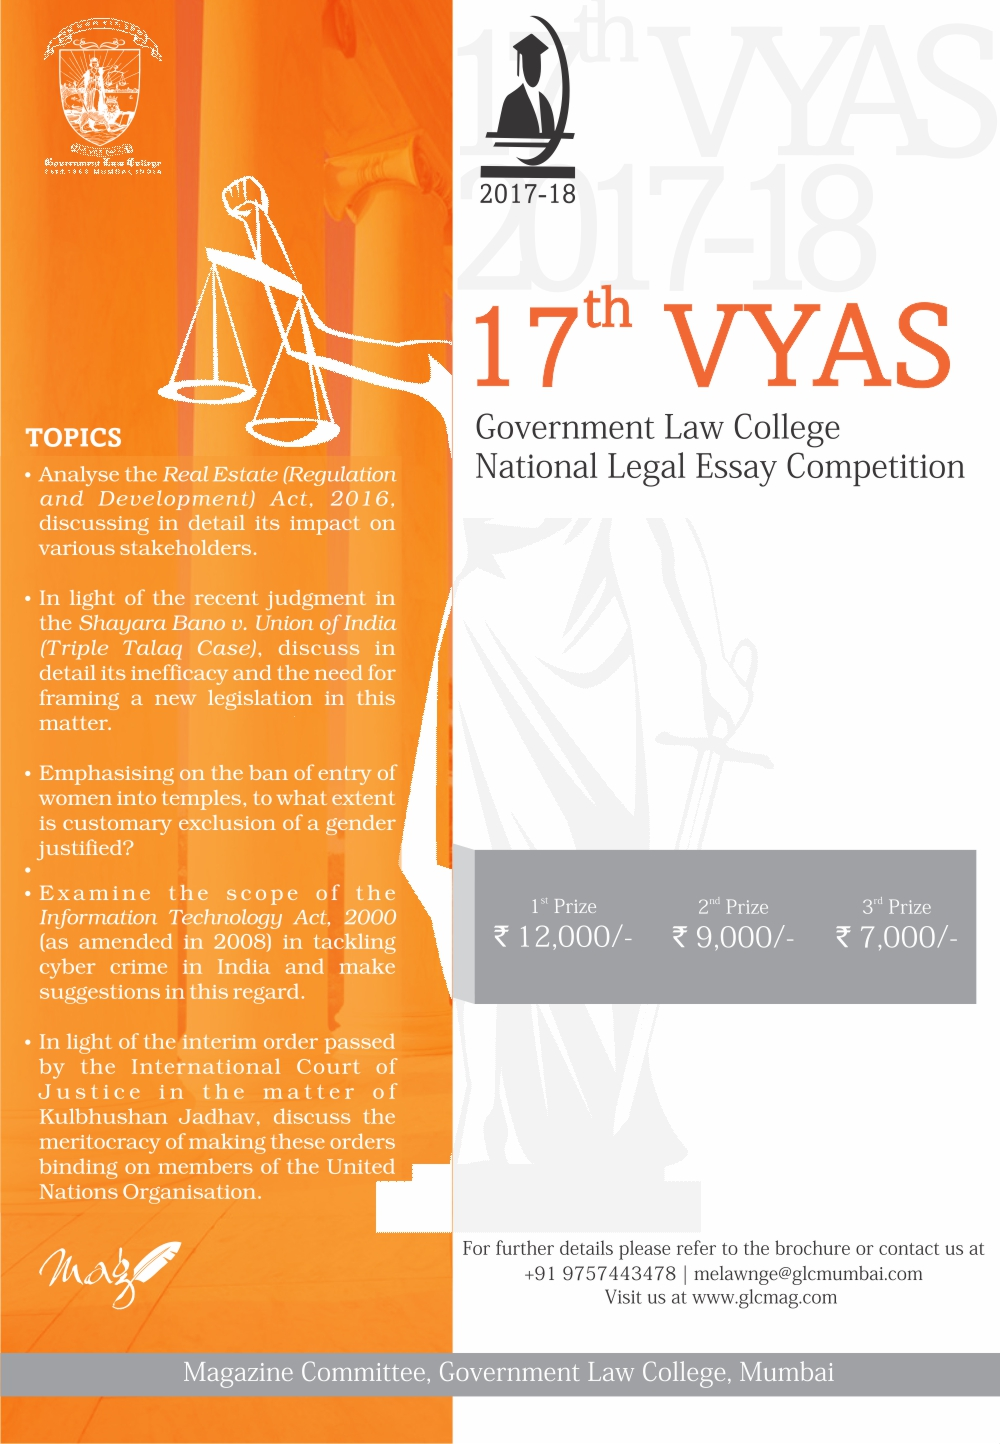 17th Vyas Government Law College National Legal Essay Competition 2017